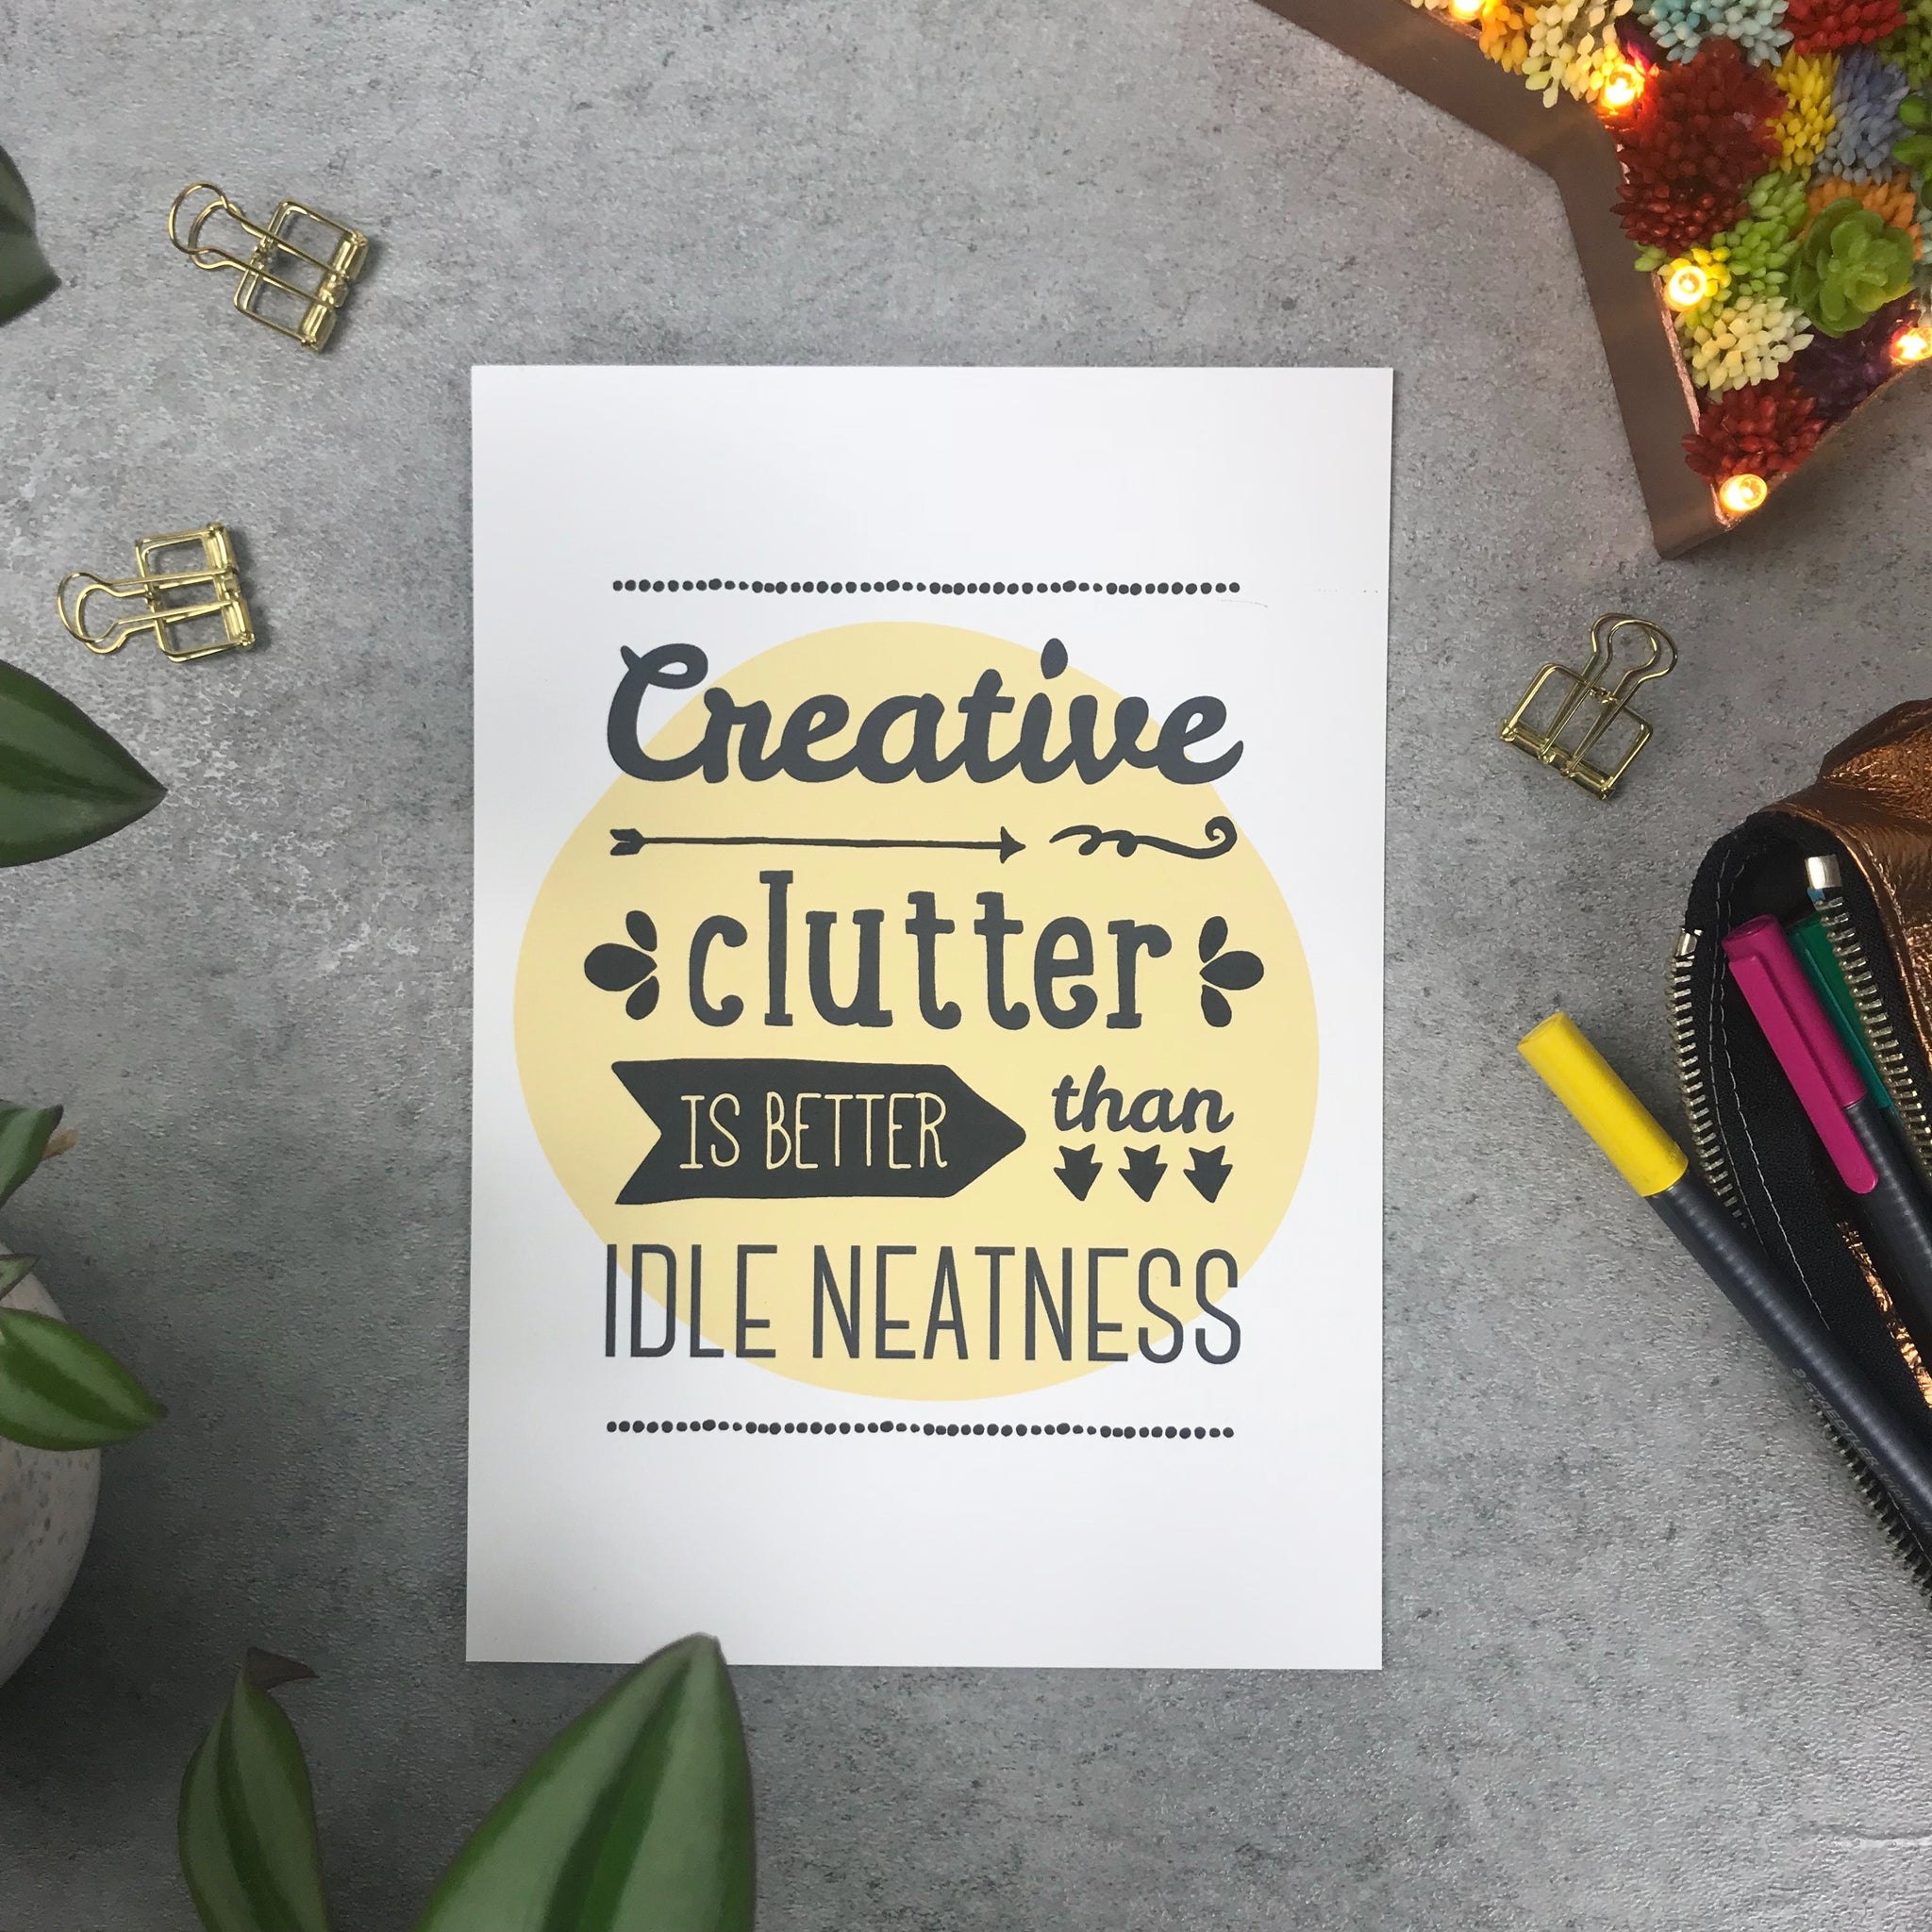 Seconds: Creative clutter is better than idle neatness A5 print